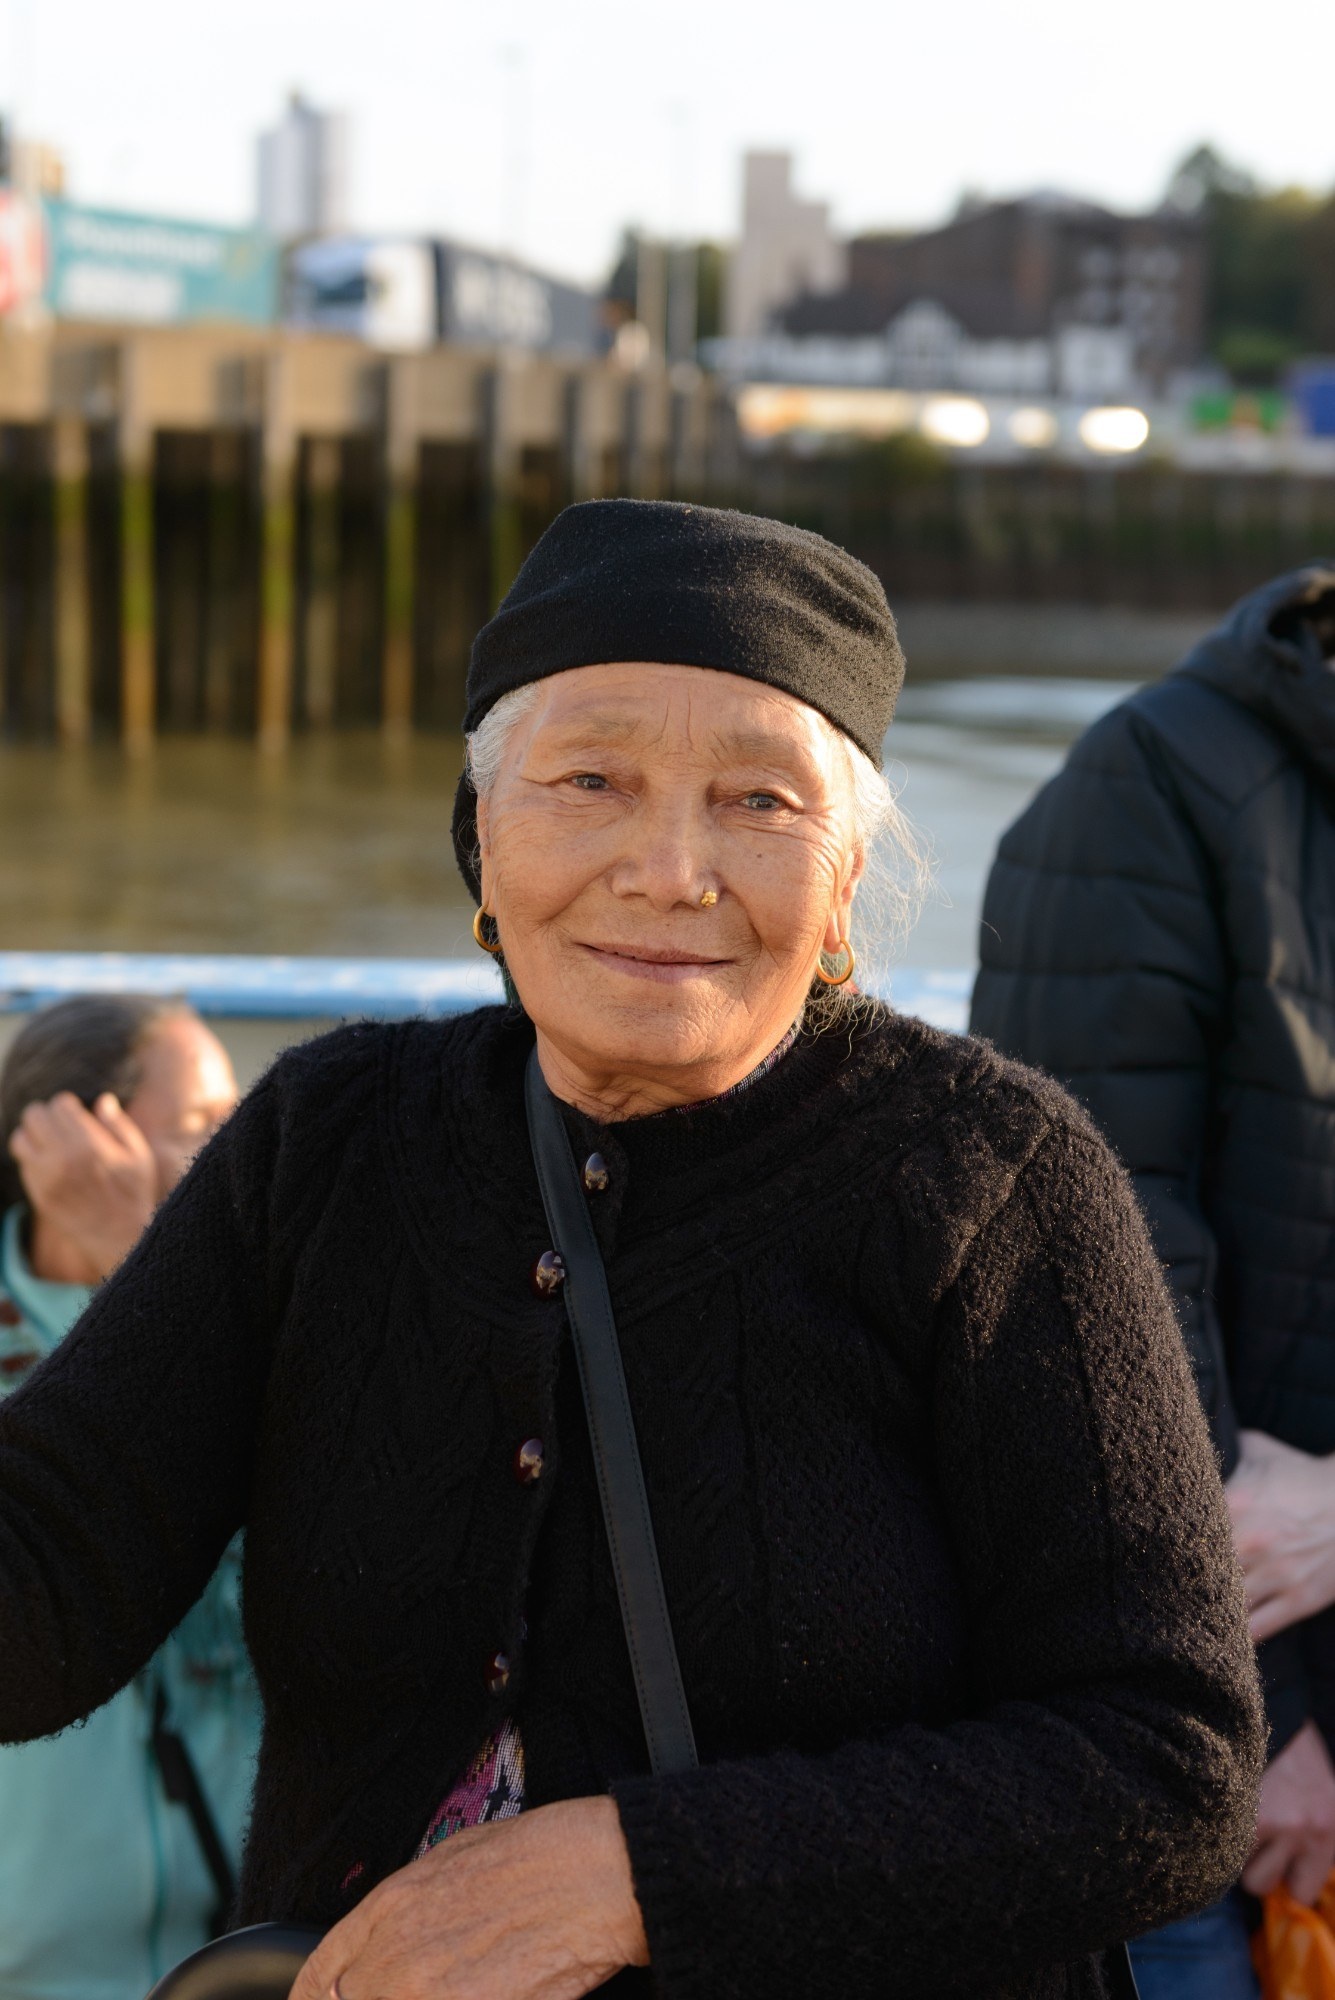 Portrait of woman on the ferry